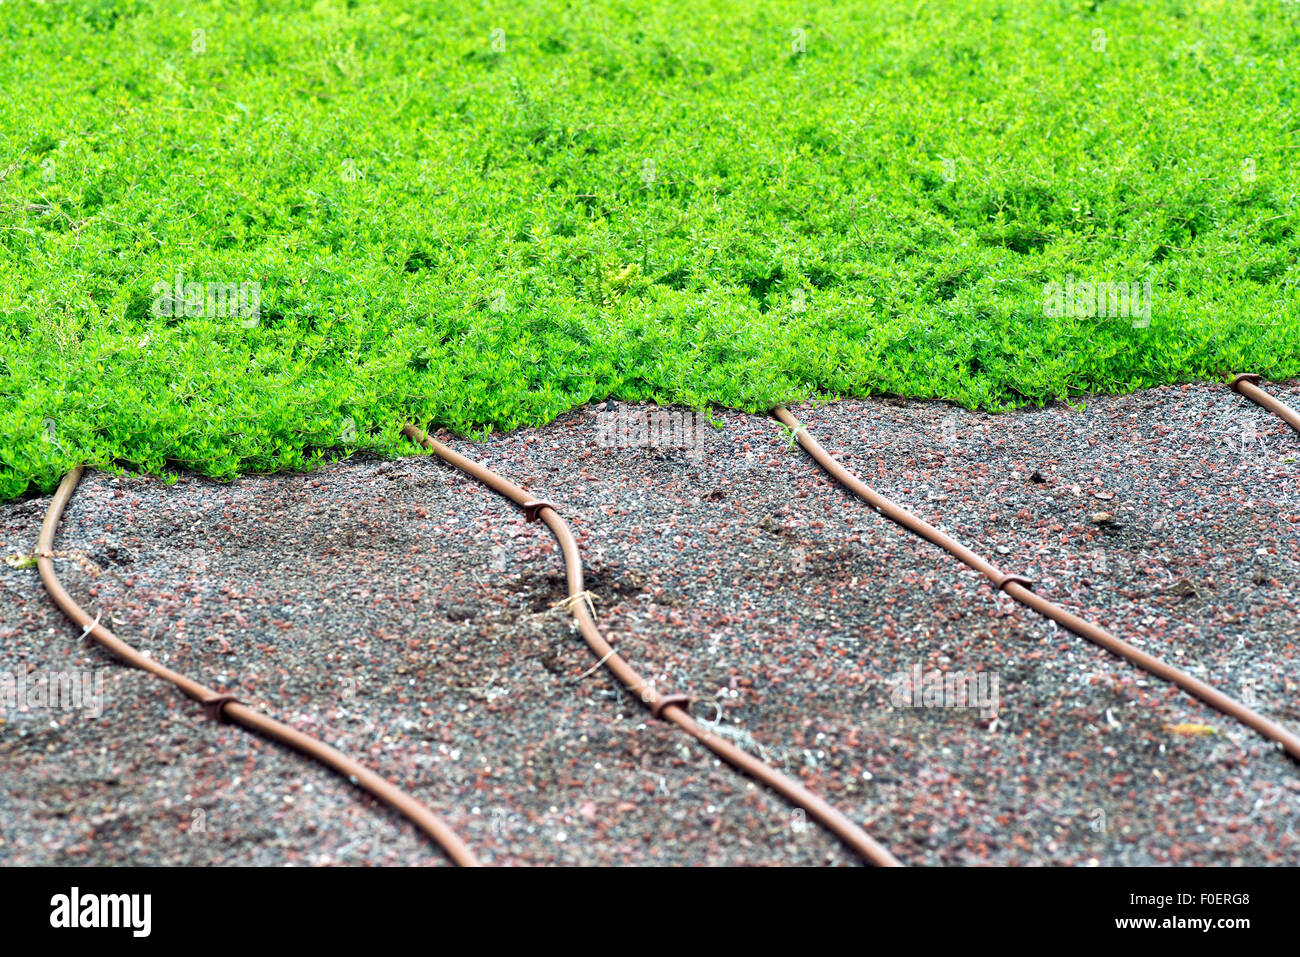 Irrigation pipes on a lawn - Stock Image